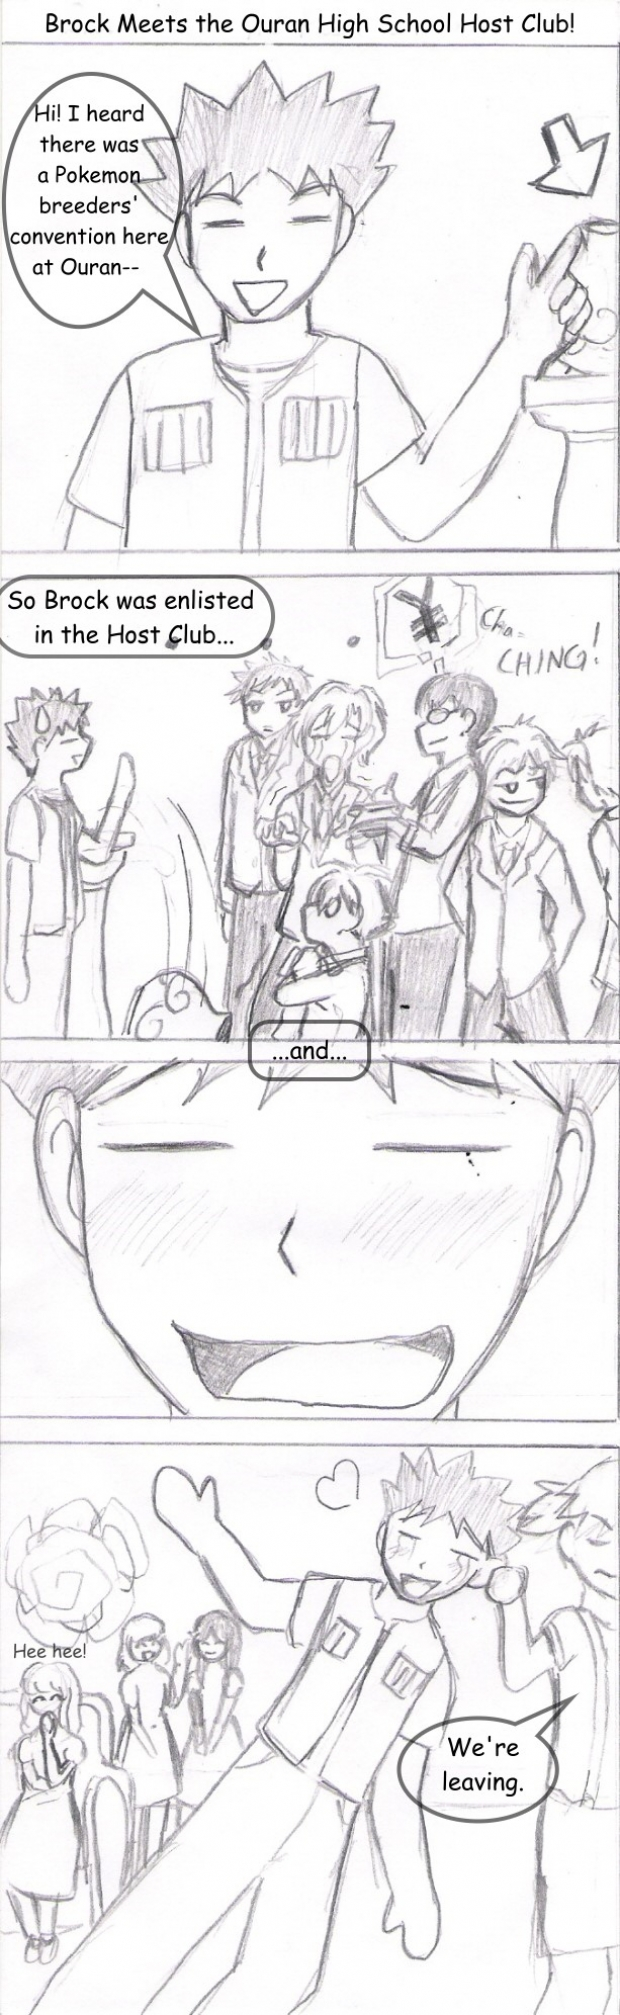 Brock Meets the Ouran High School Host Club!